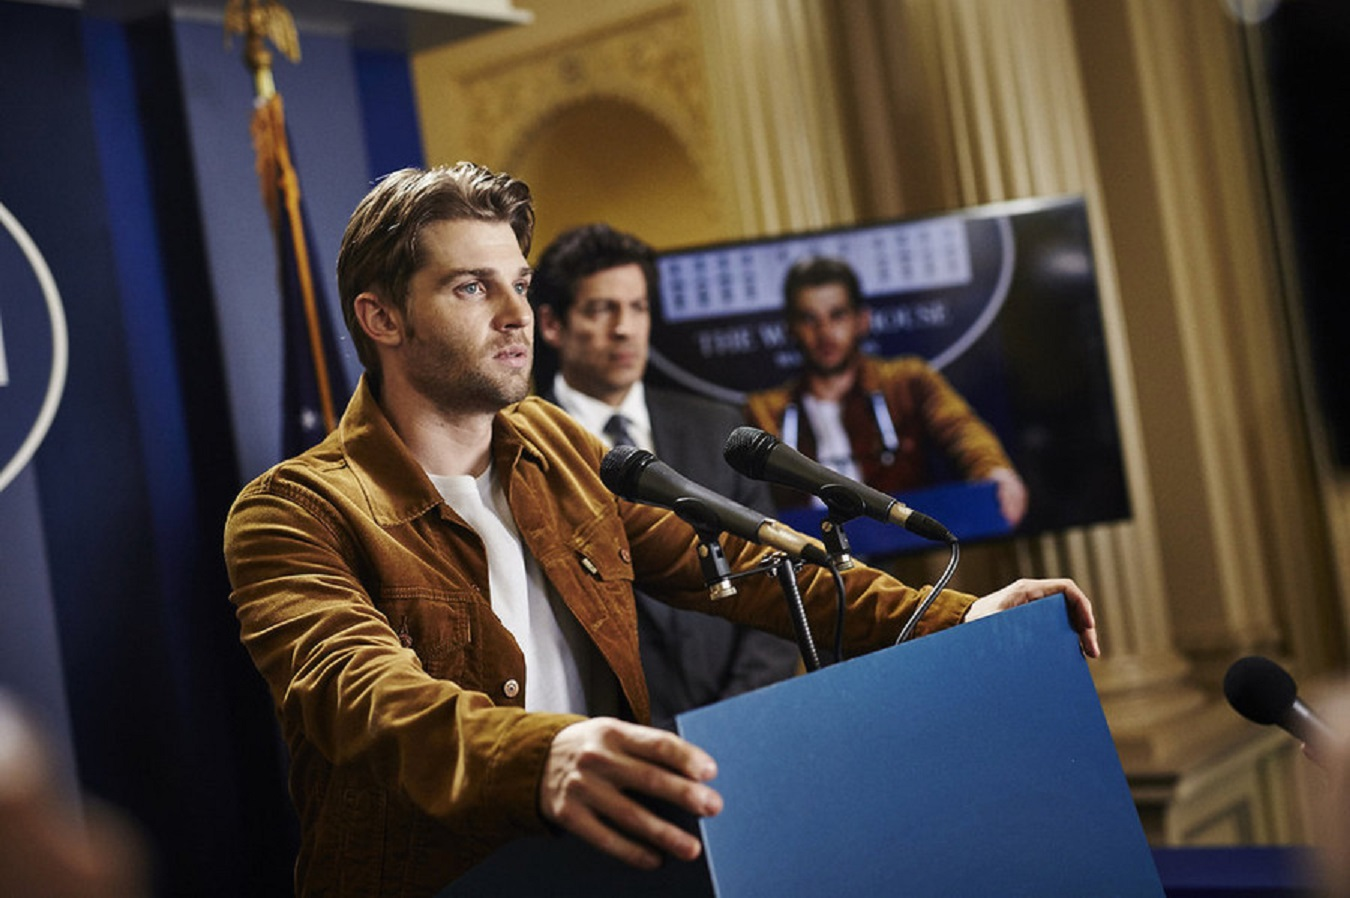 Mike Vogel as Ricky Stormgren in Childhood's End (2015)